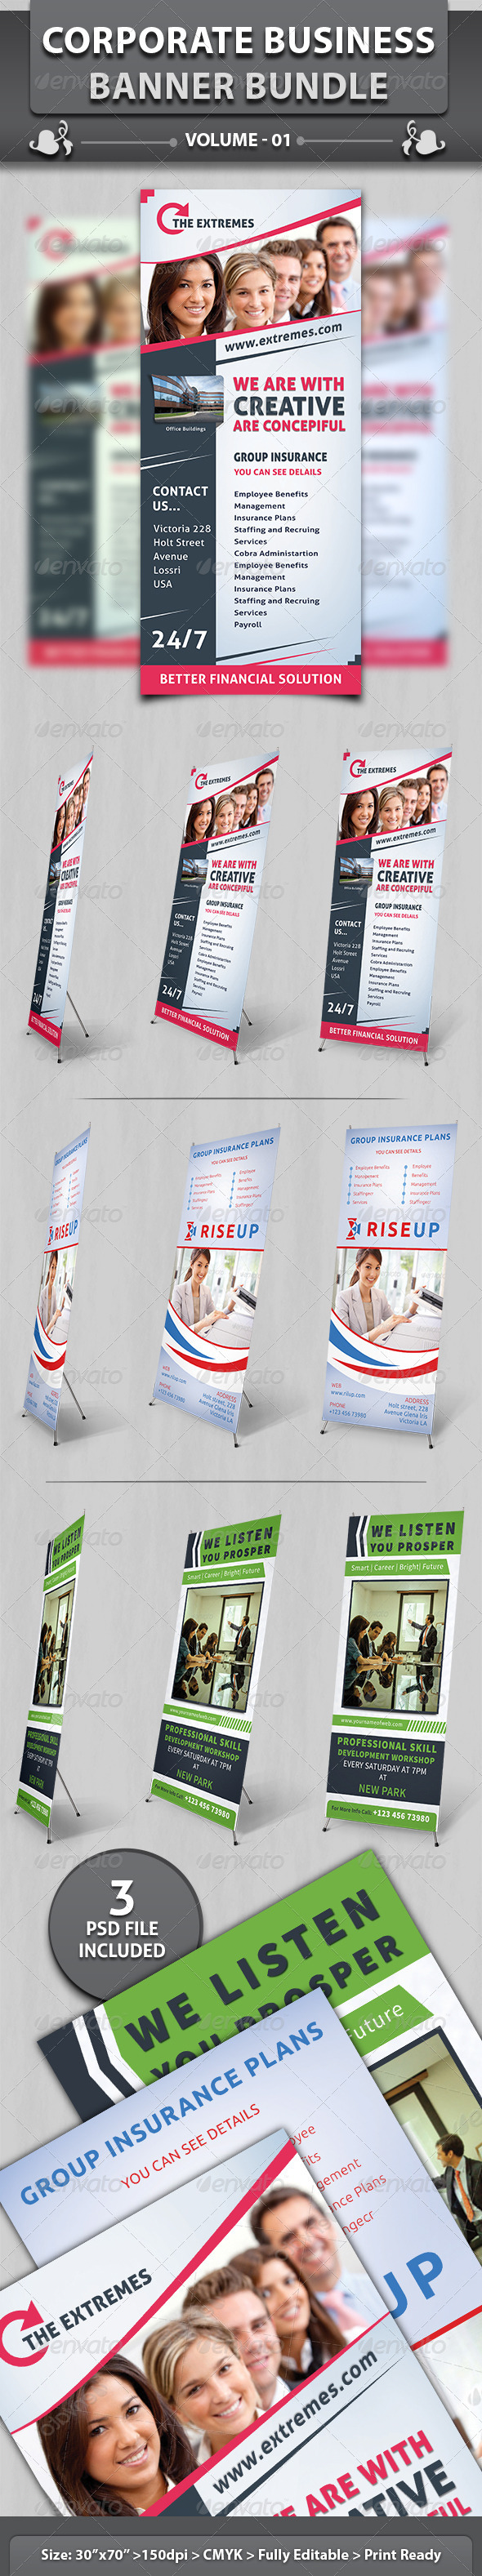 Corporate Business Banner | Bundle 1 - Signage Print Templates